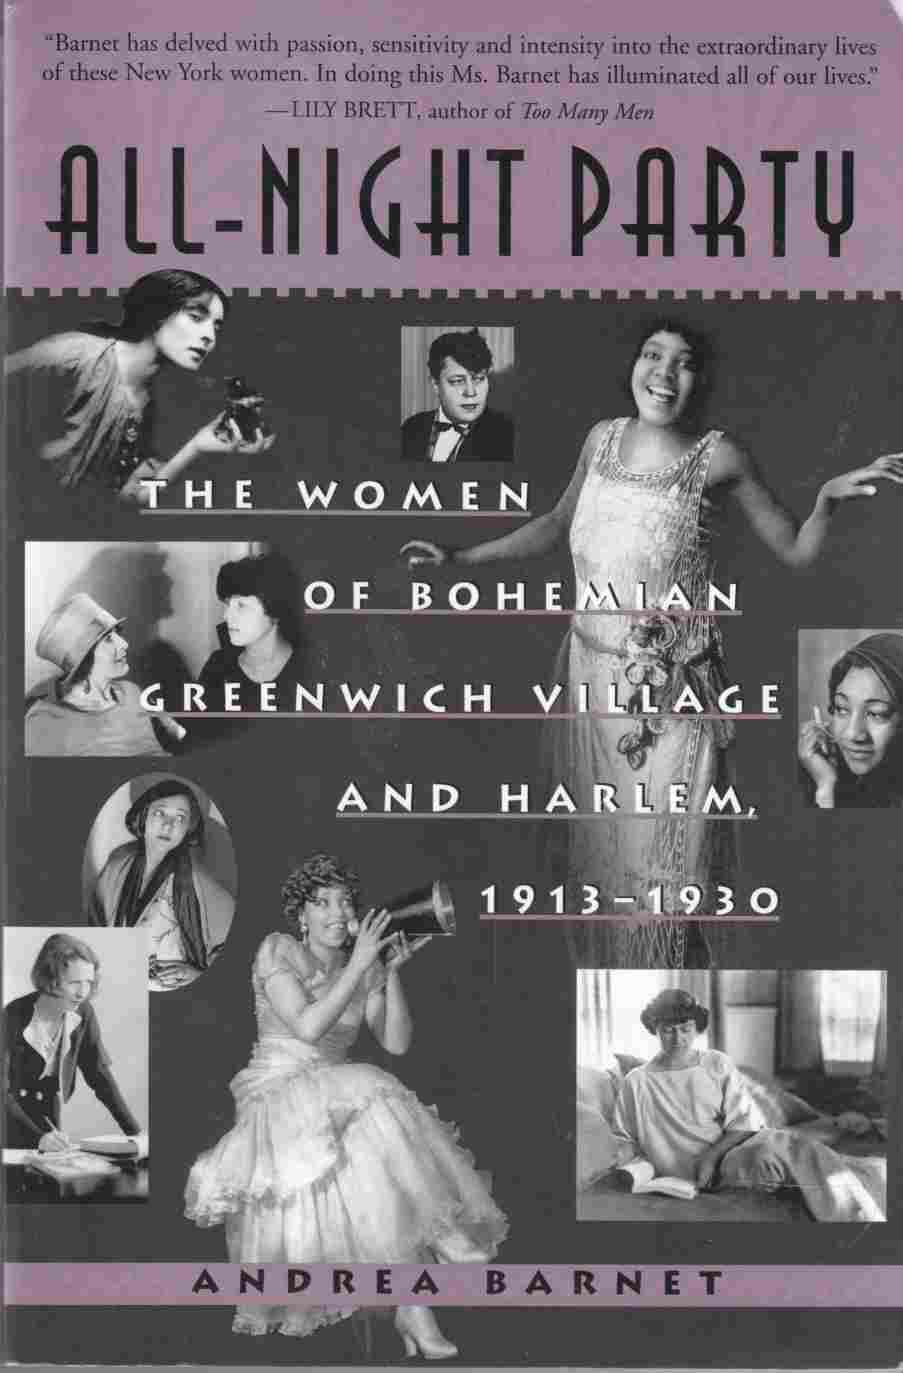 Image for All-Night Party The Women of Bohemian Greenwich Village and Harlem, 1913-1930